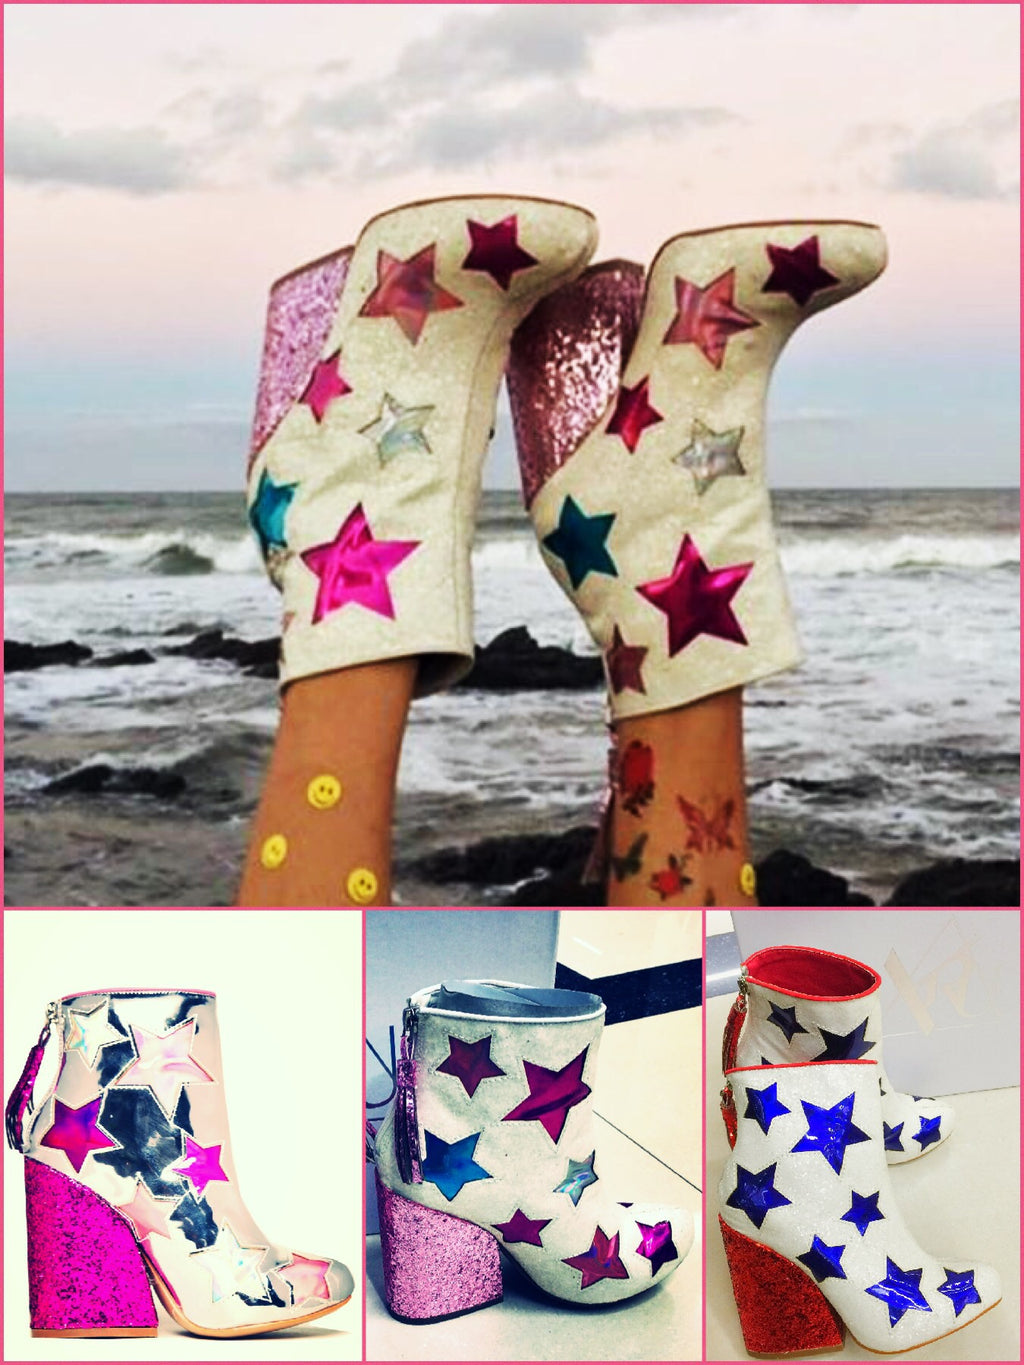 BlissGirl - You're A Star Sparkle Boots - - Harajuku - Kawaii - Alternative - Fashion